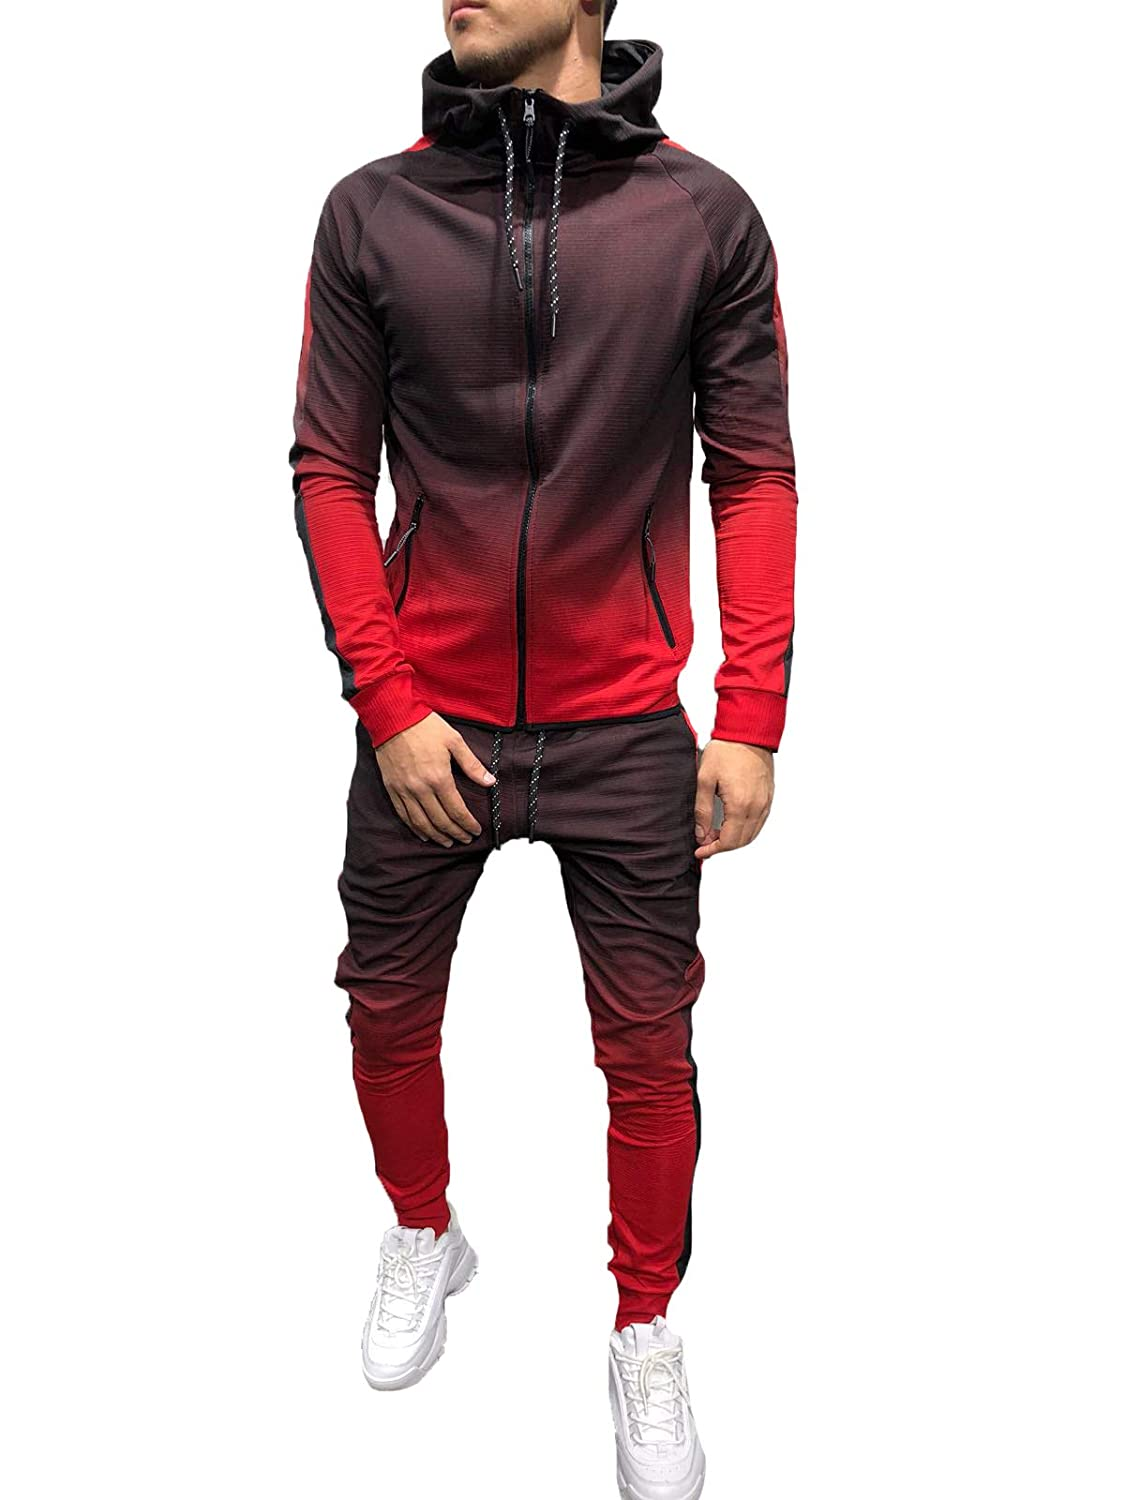 Mens Long Sleeve Zipper Gradient Hooded Sweatshirt + Long Pant Tracksuits 2Pcs Sets